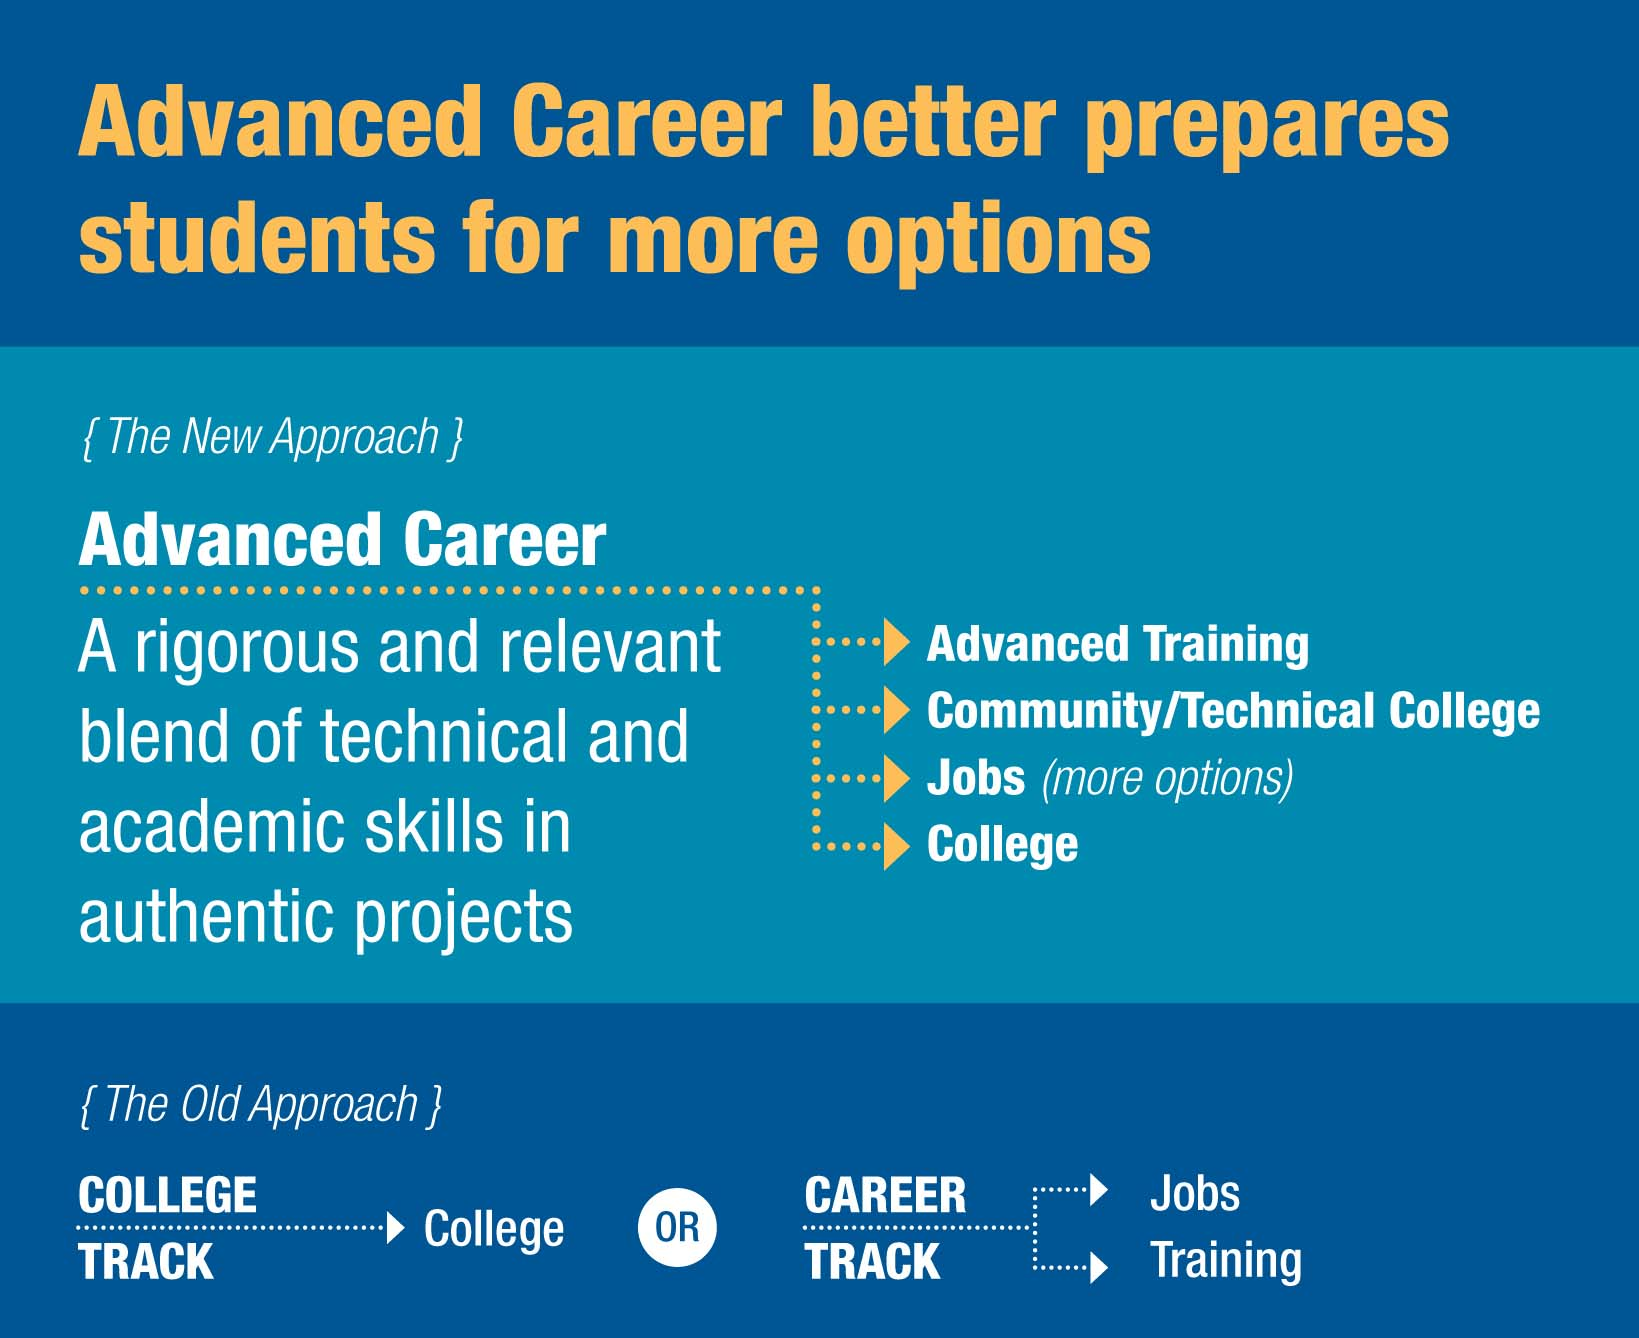 Advanced Career prepares students for more options